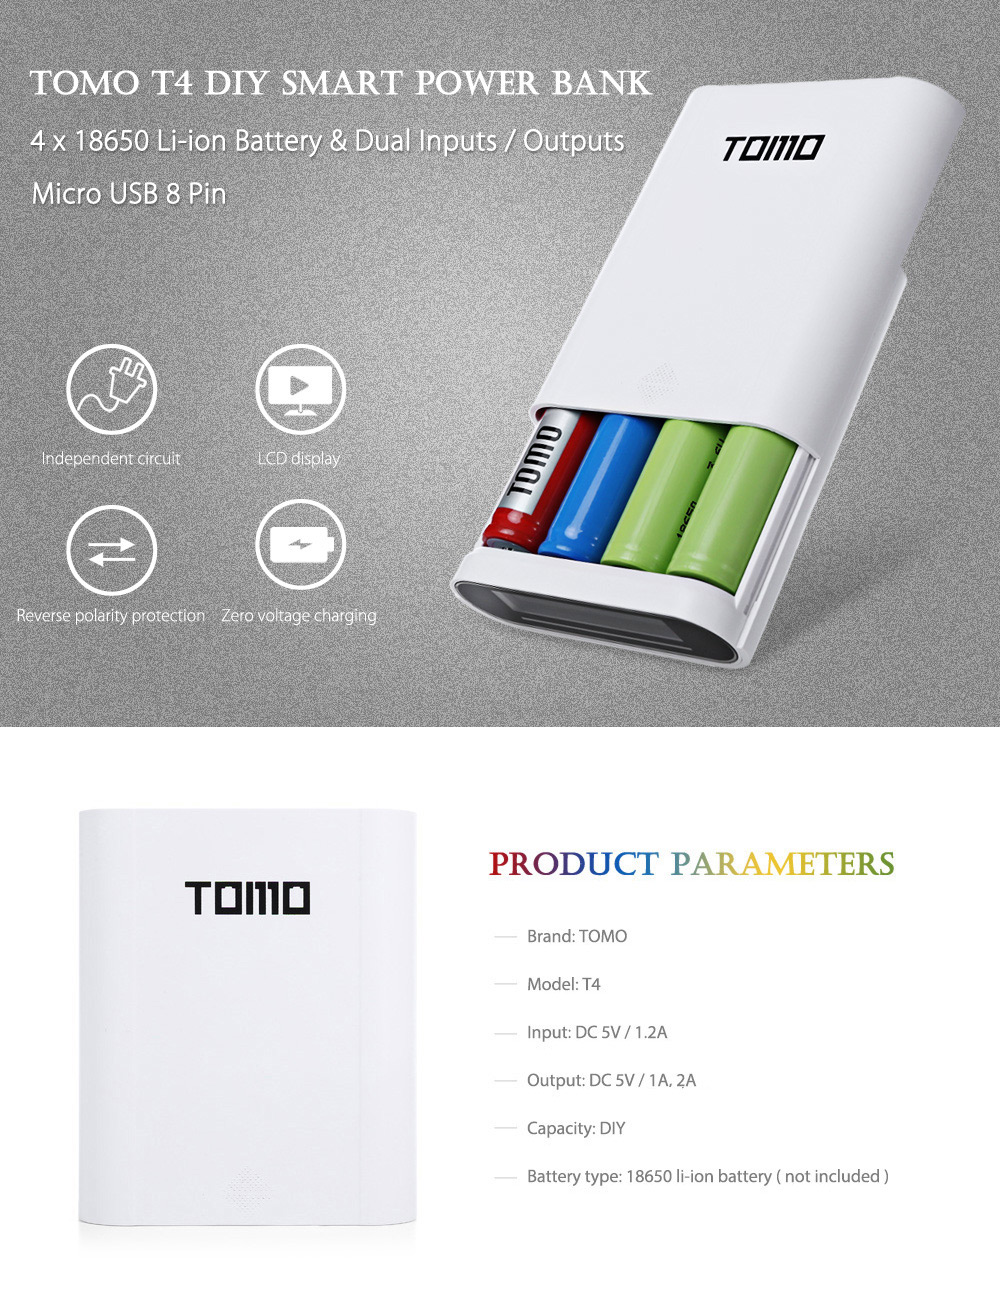 Tomo T4 4 X 18650 Li Ion Battery Diy Smart Power Charger 1416 Dc Shade Motors Can The Polarity Be Reversed With A Simple Switch Bank Micro Usb 8